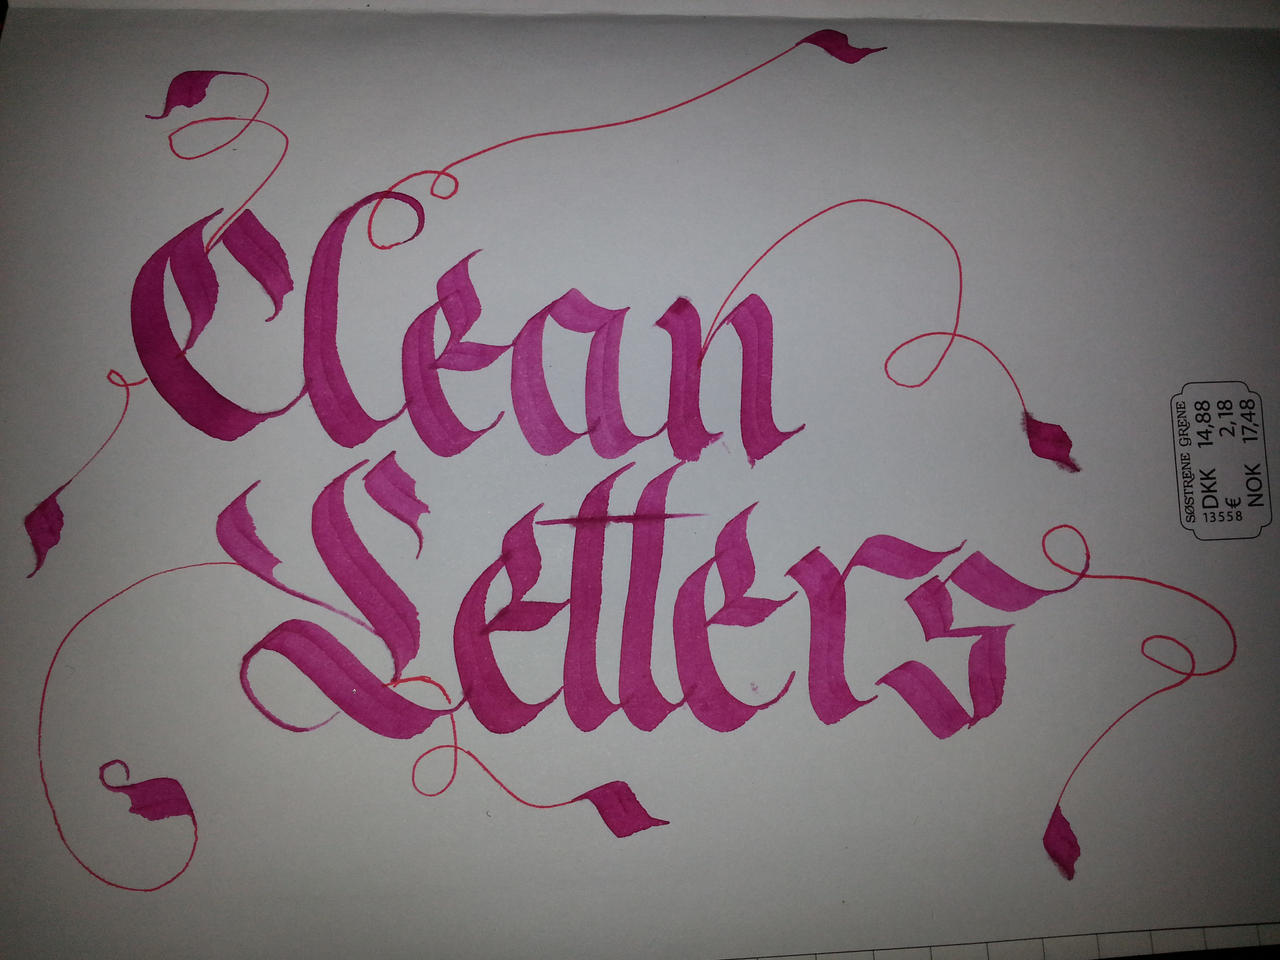 Clean letters calligraphy by milenist on deviantart